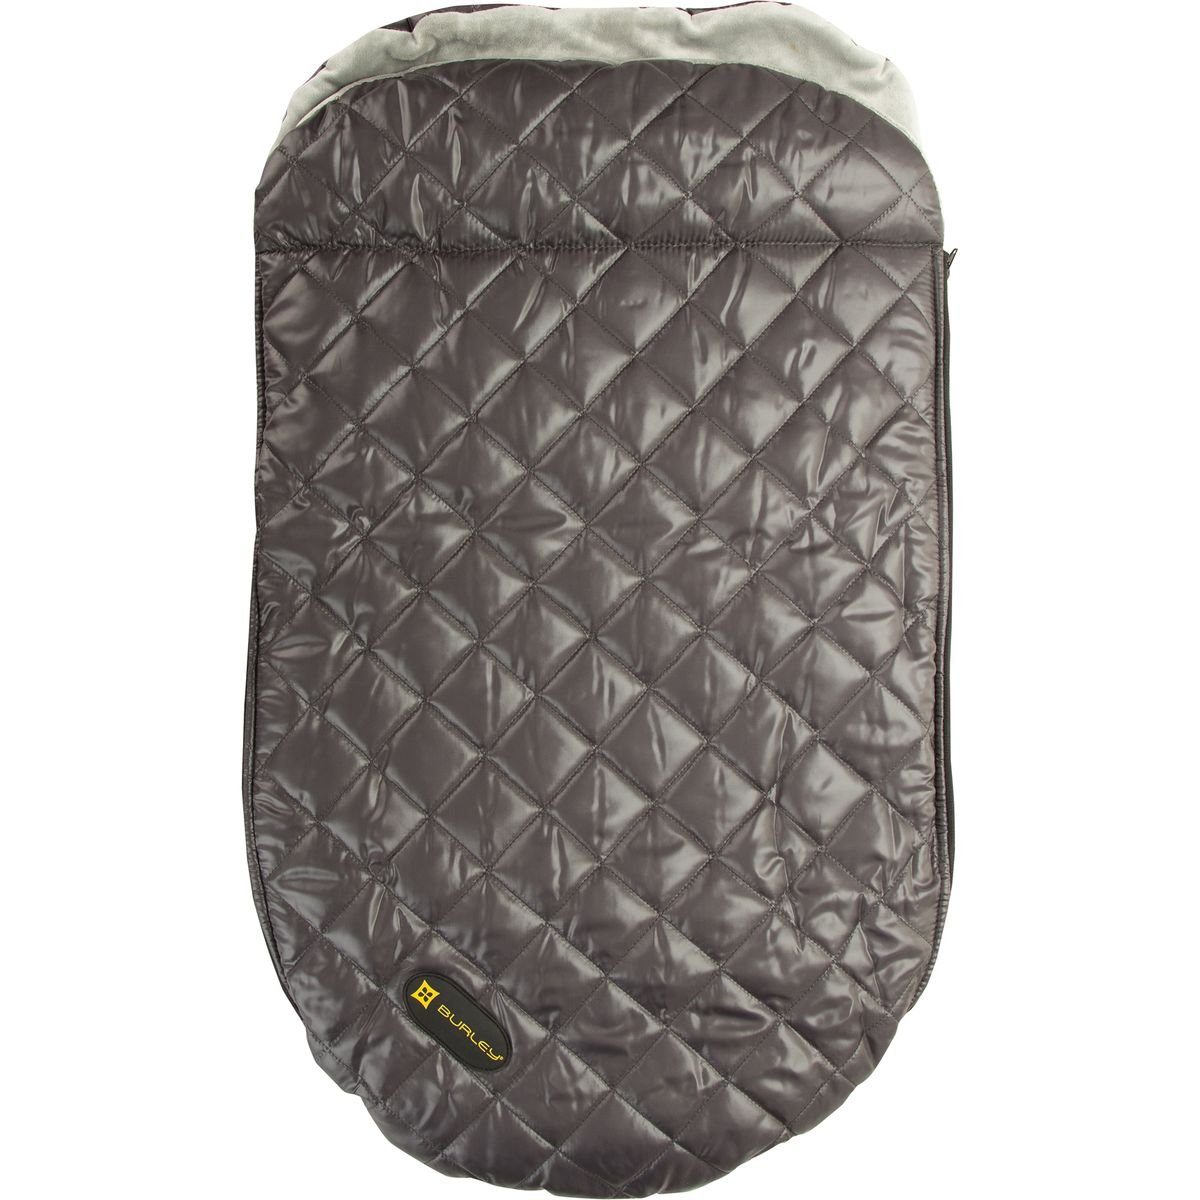 BURLEY SOLSTICE FOOT MUFF Grau - Single